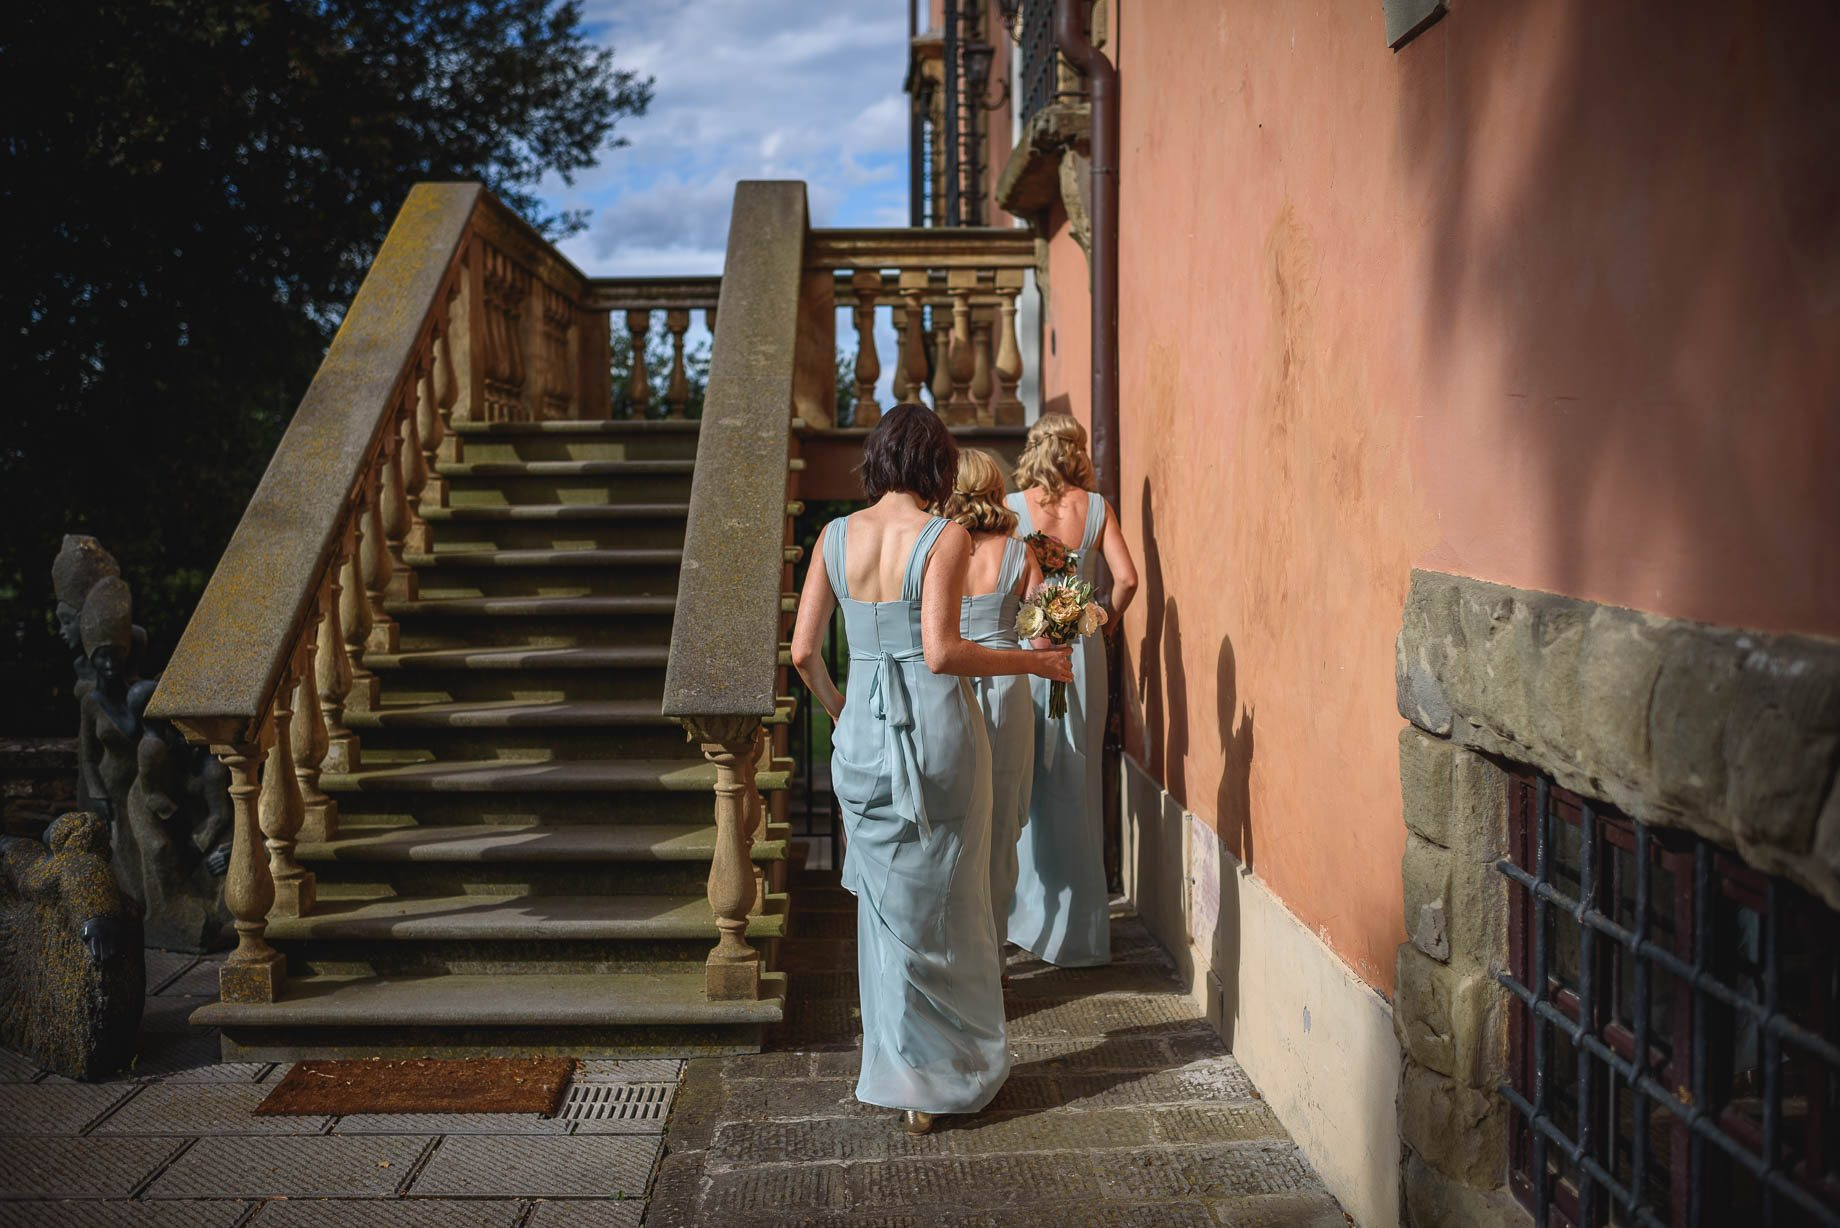 Tuscany wedding photography - Roisin and Moubin - Guy Collier Photography (99 of 251)